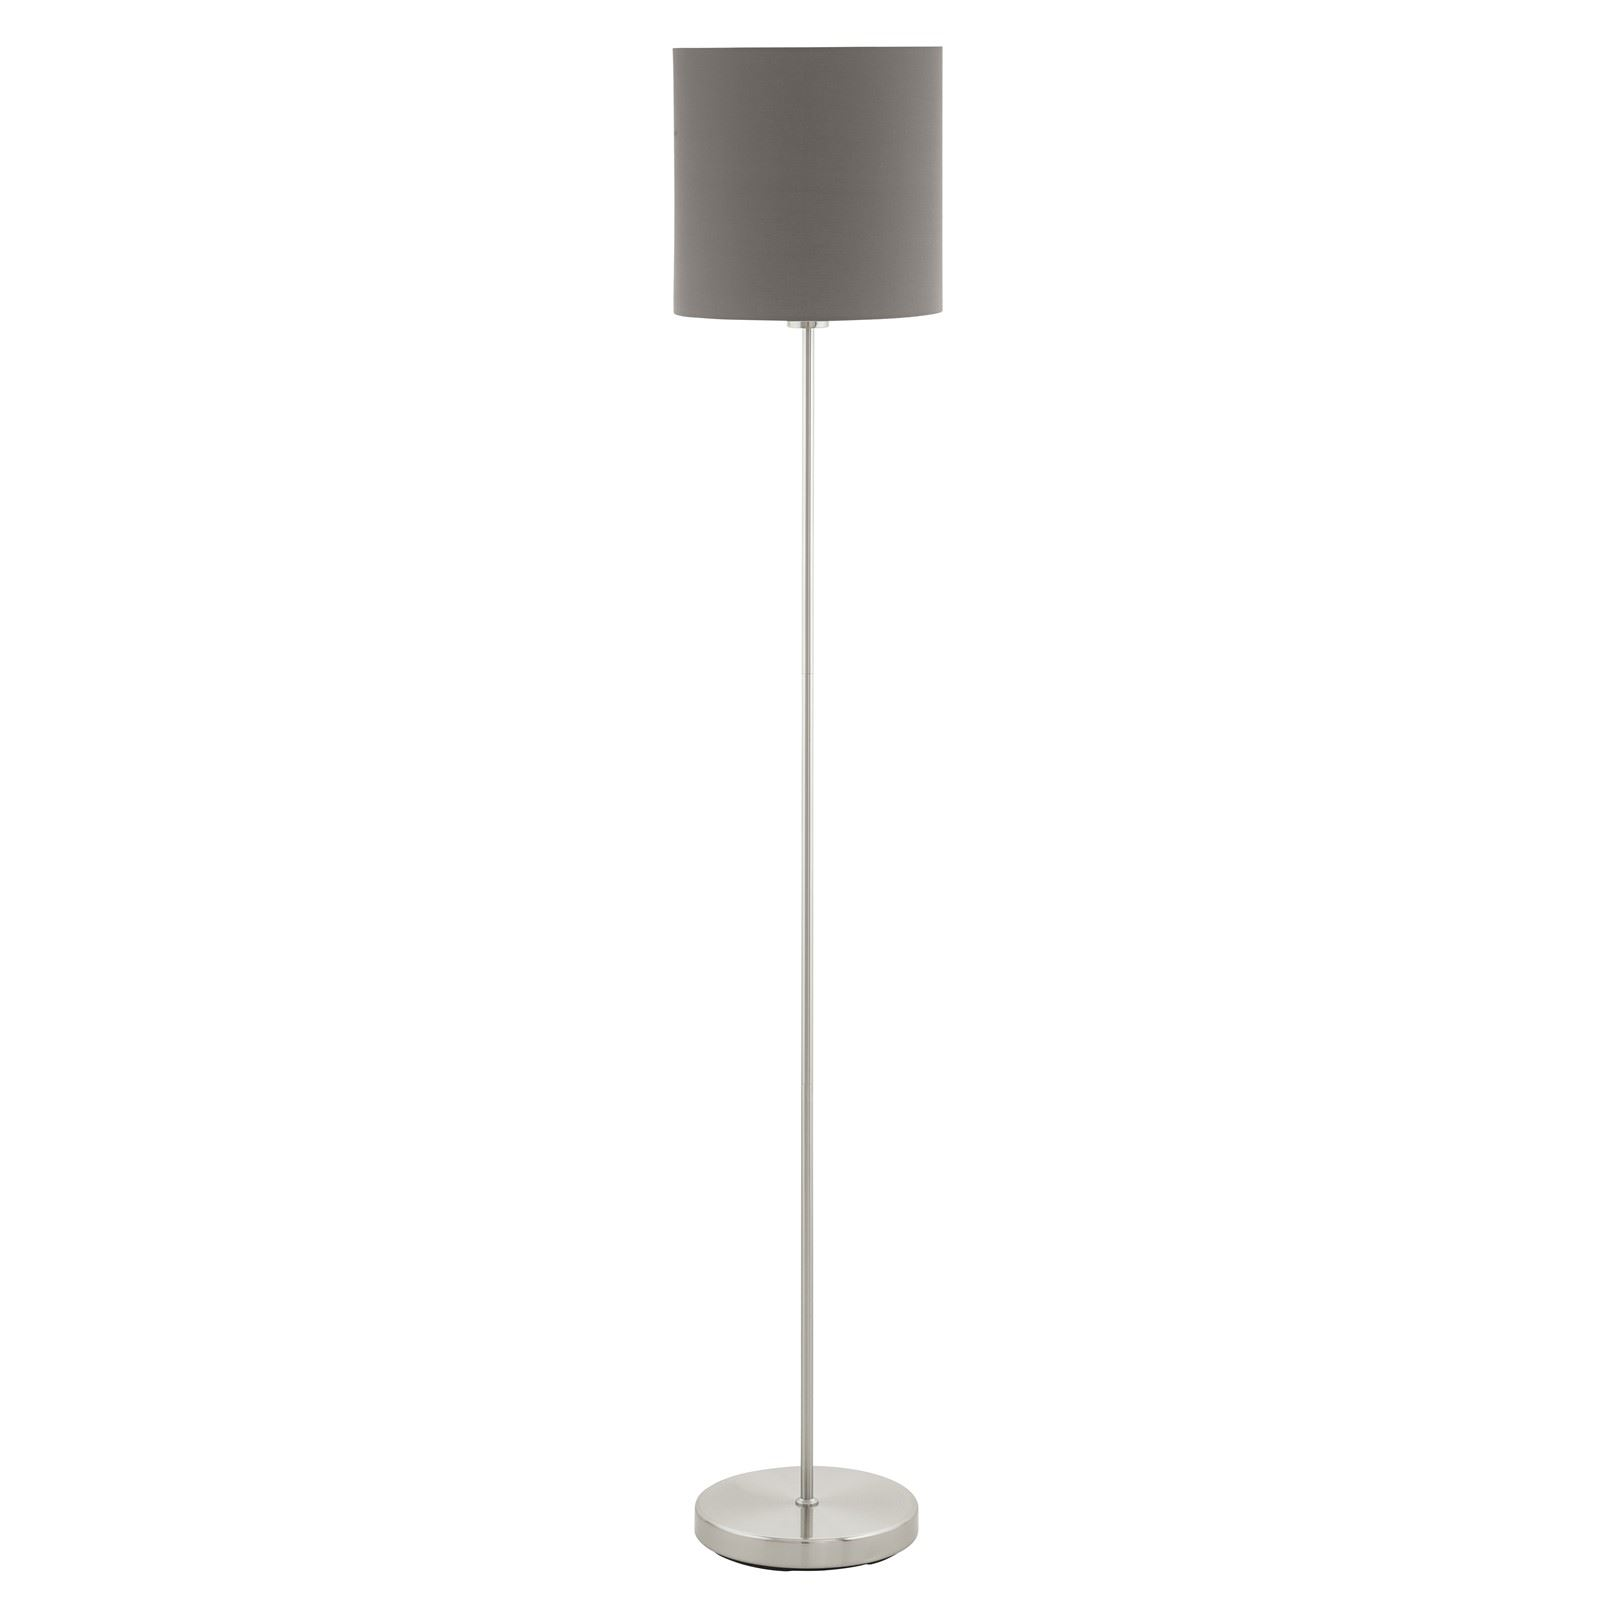 Pasteri Satin Nickel Floor Lamp Anthracite Shade With Foot-Switch